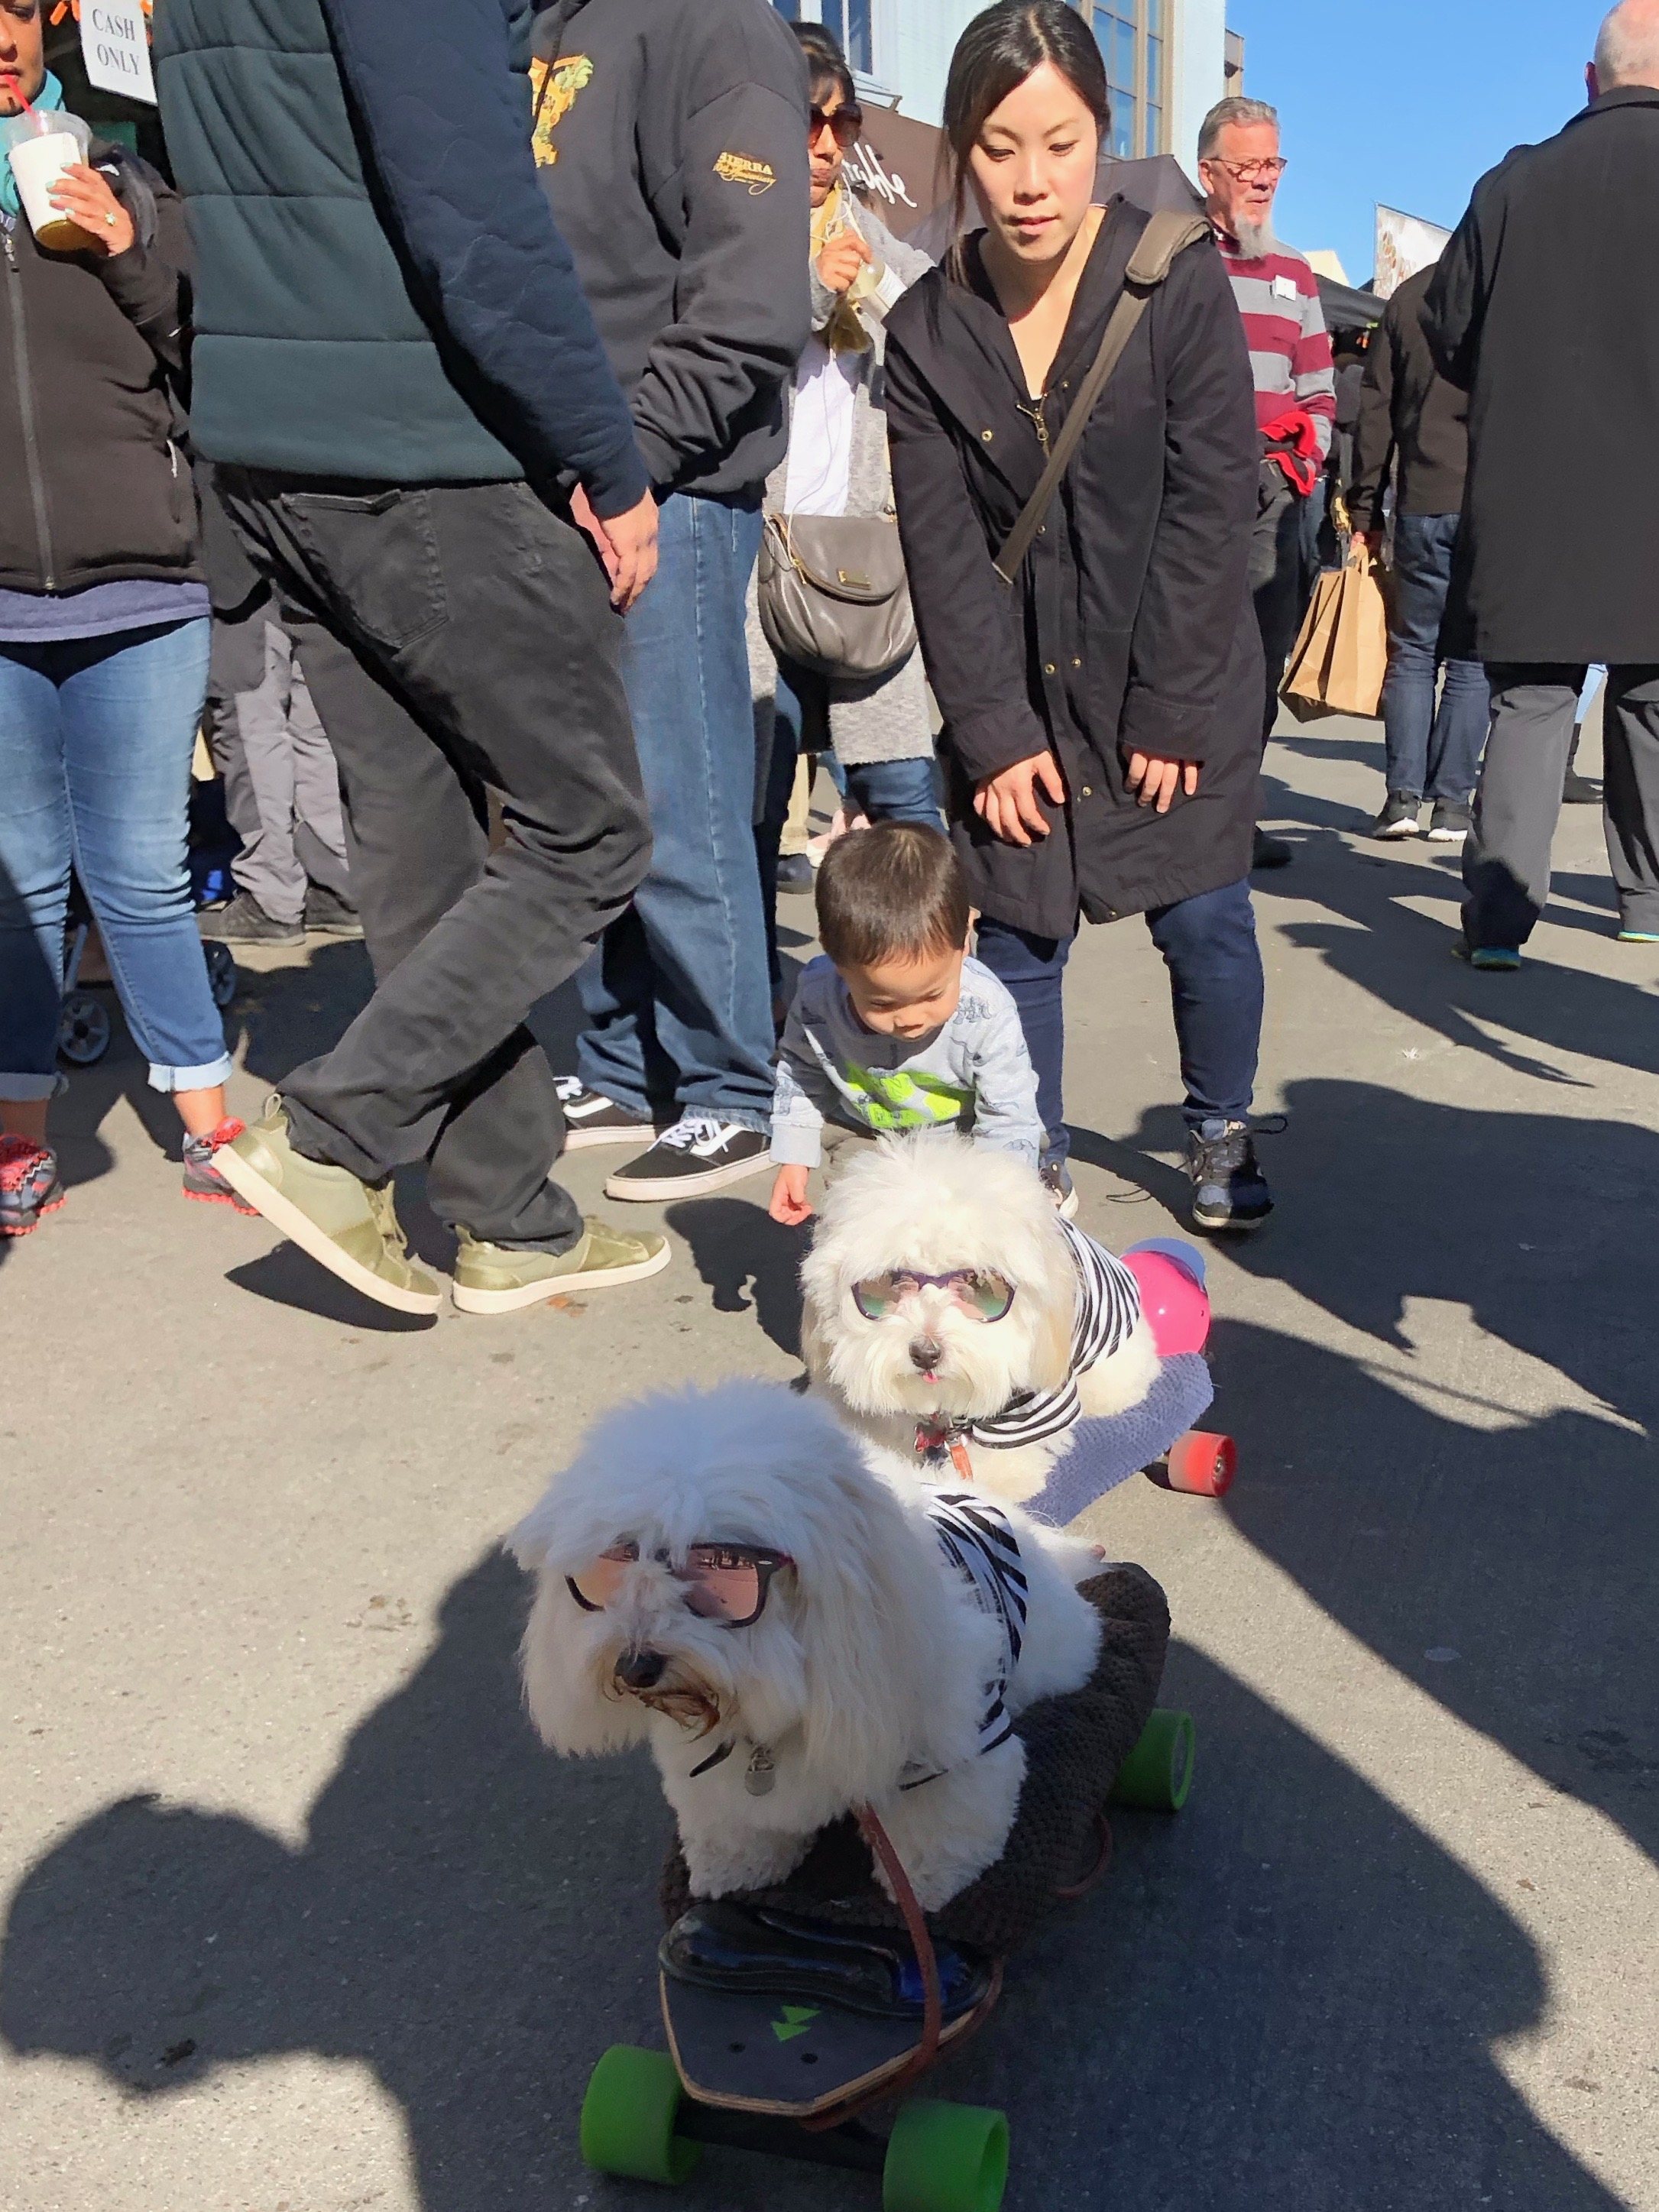 Two Coton De Tulear Dogs Sitting On Skateboards